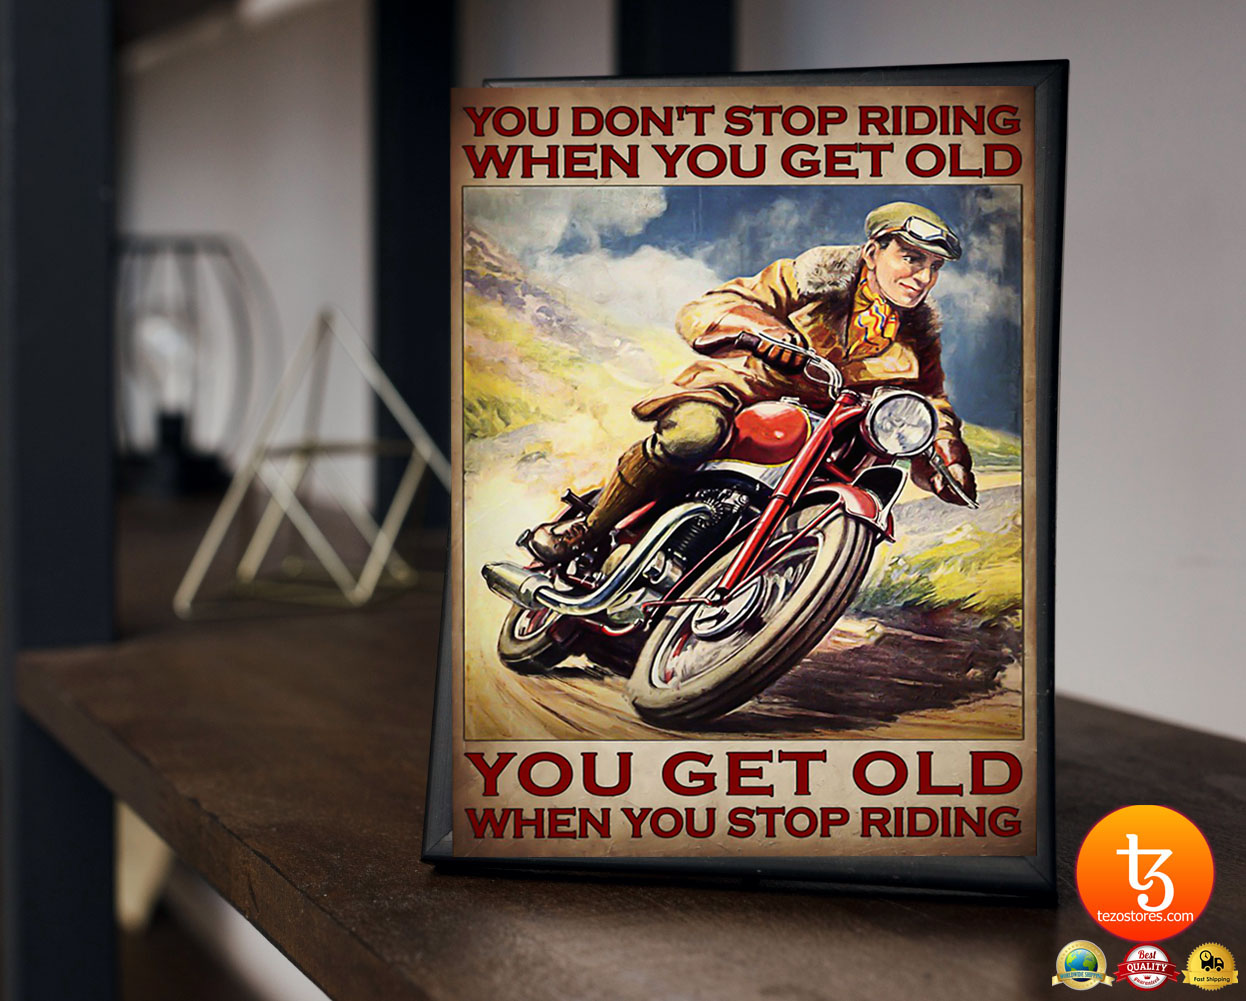 Man You don't stop riding when you get old poster 19